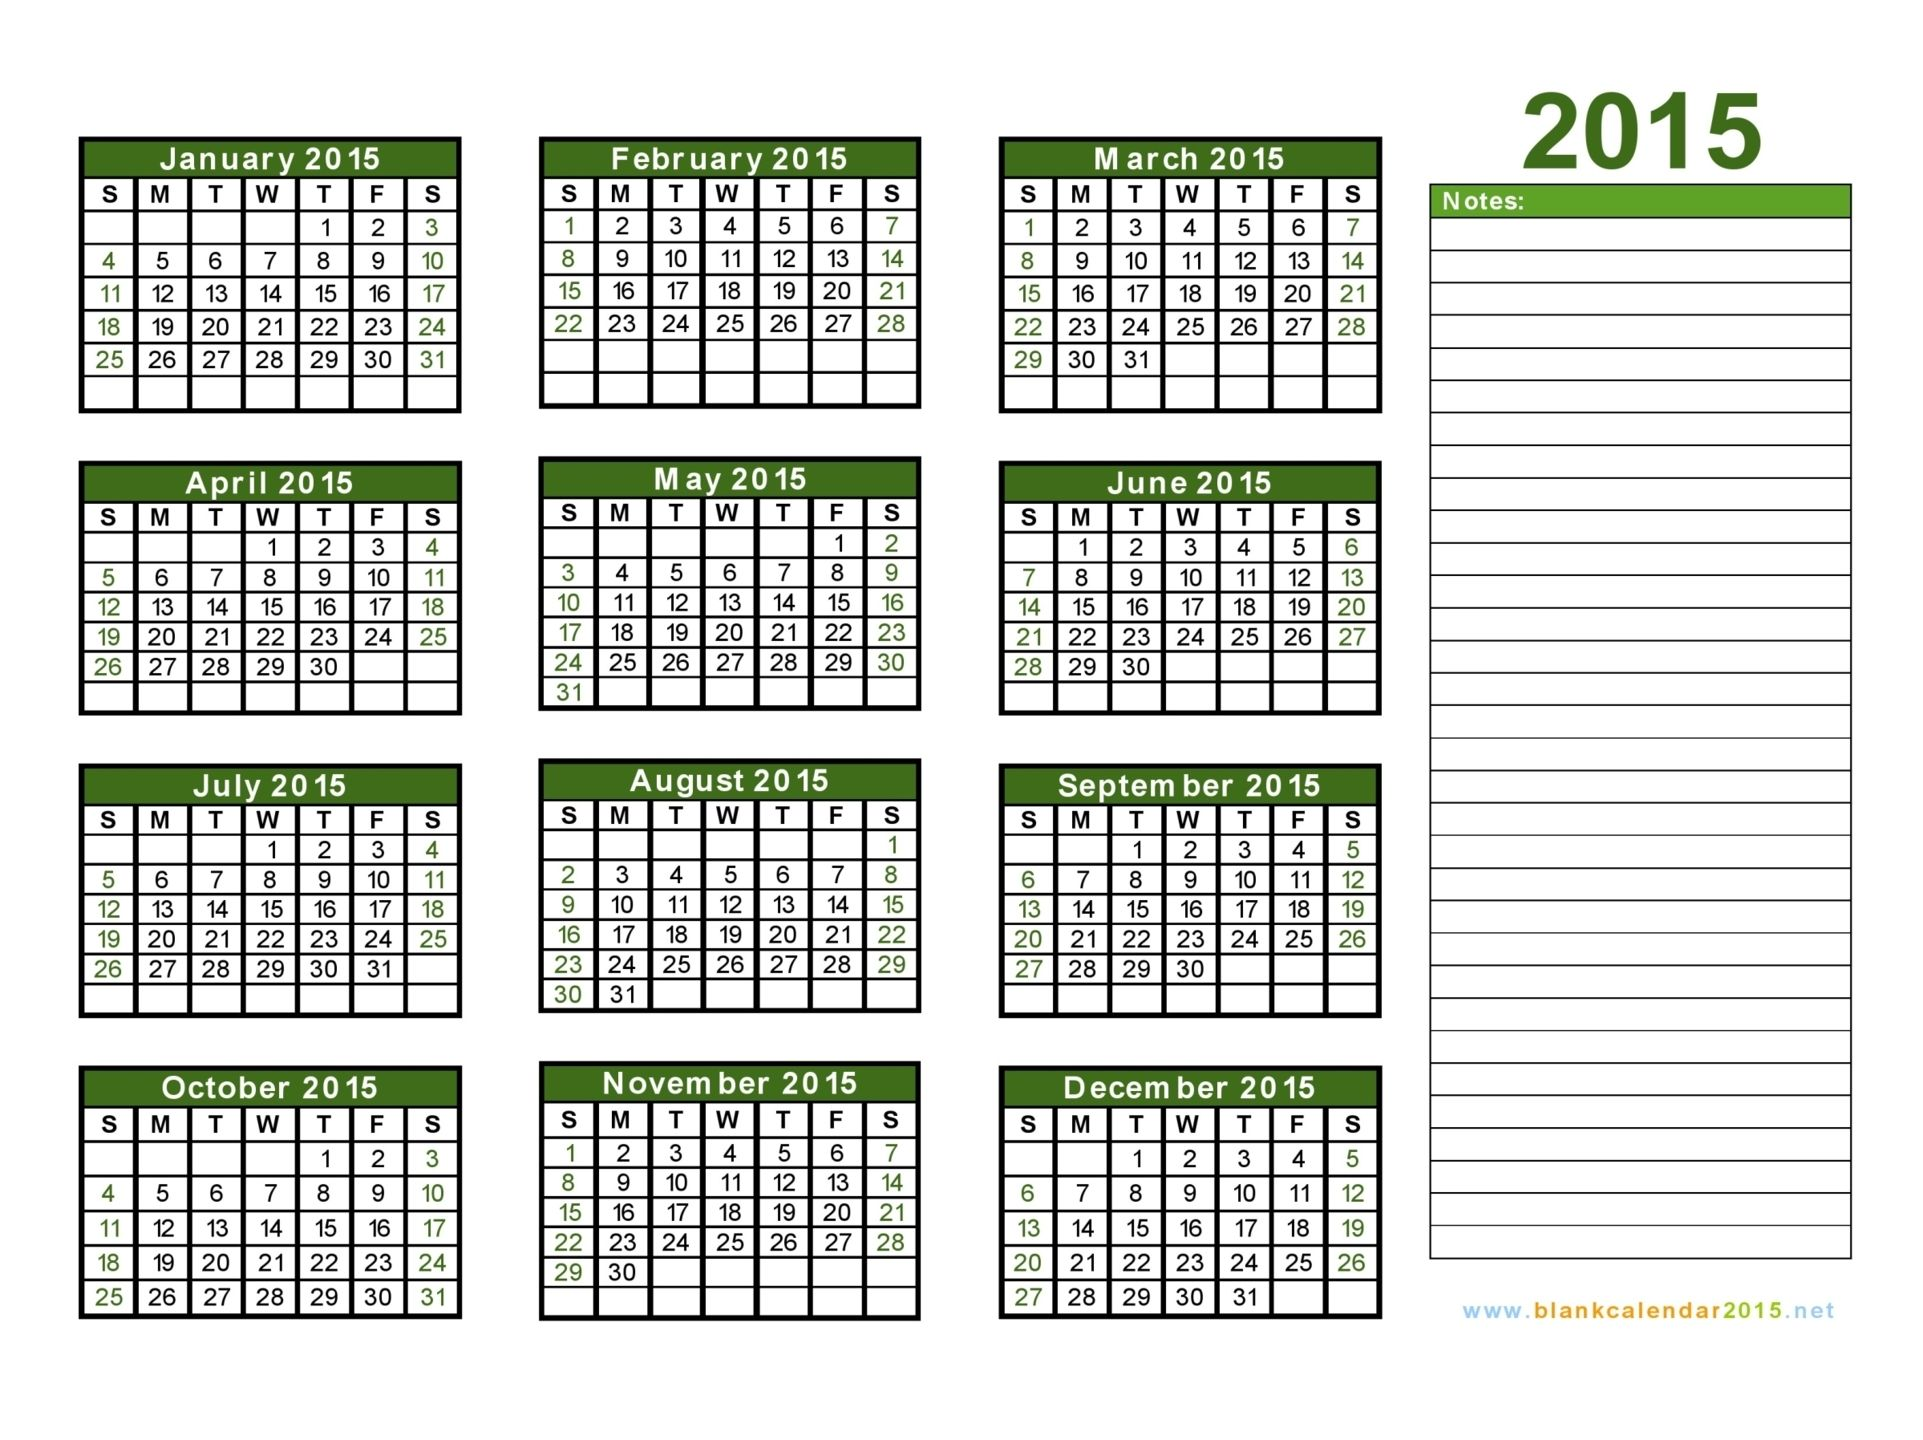 2015 calendars | Blank Calendar 2015 - Free Download Yearly ...